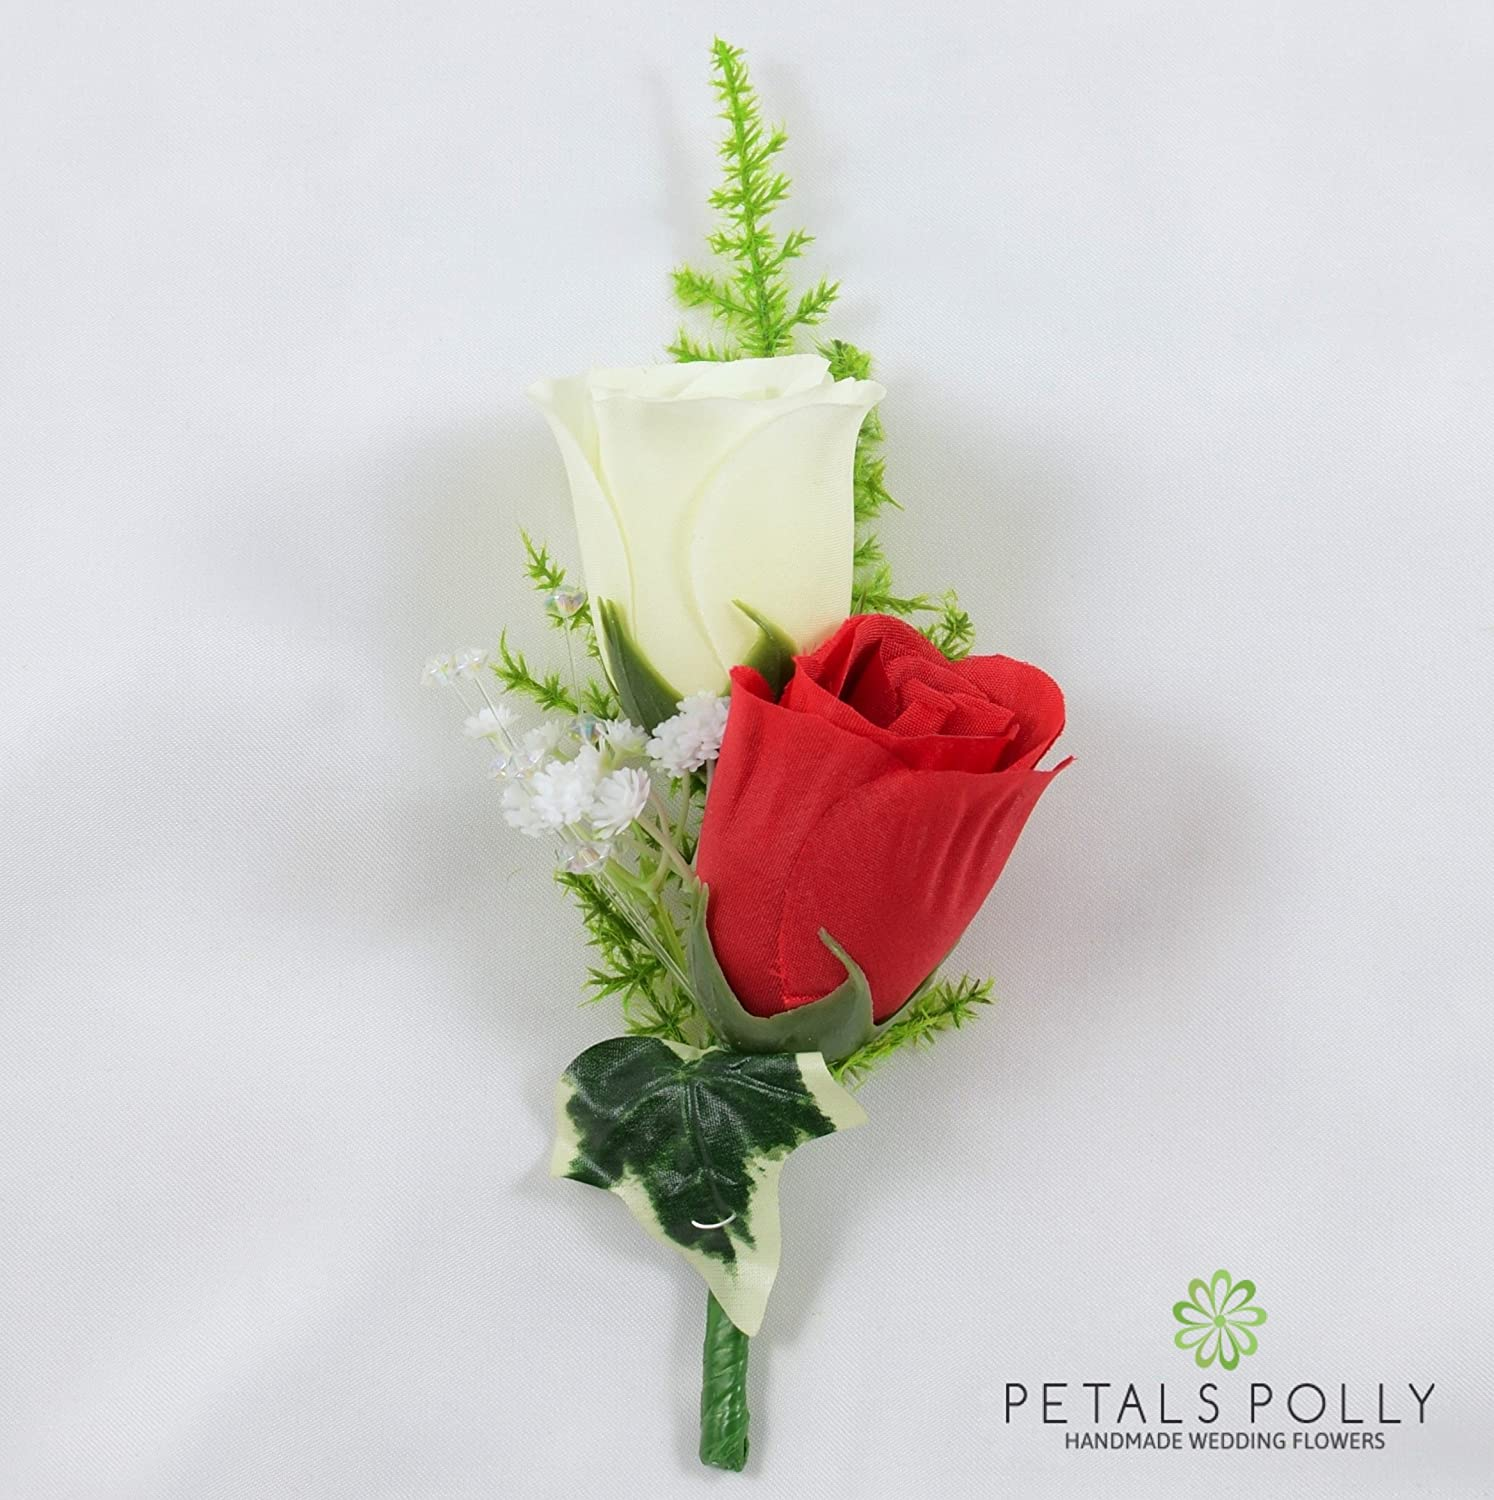 Artificial Wedding Flowers Hand-made by Petals Polly, SILK DOUBLE ROSE BUTTONHOLE IN RED/IVORY PETALS POLLY FLOWERS